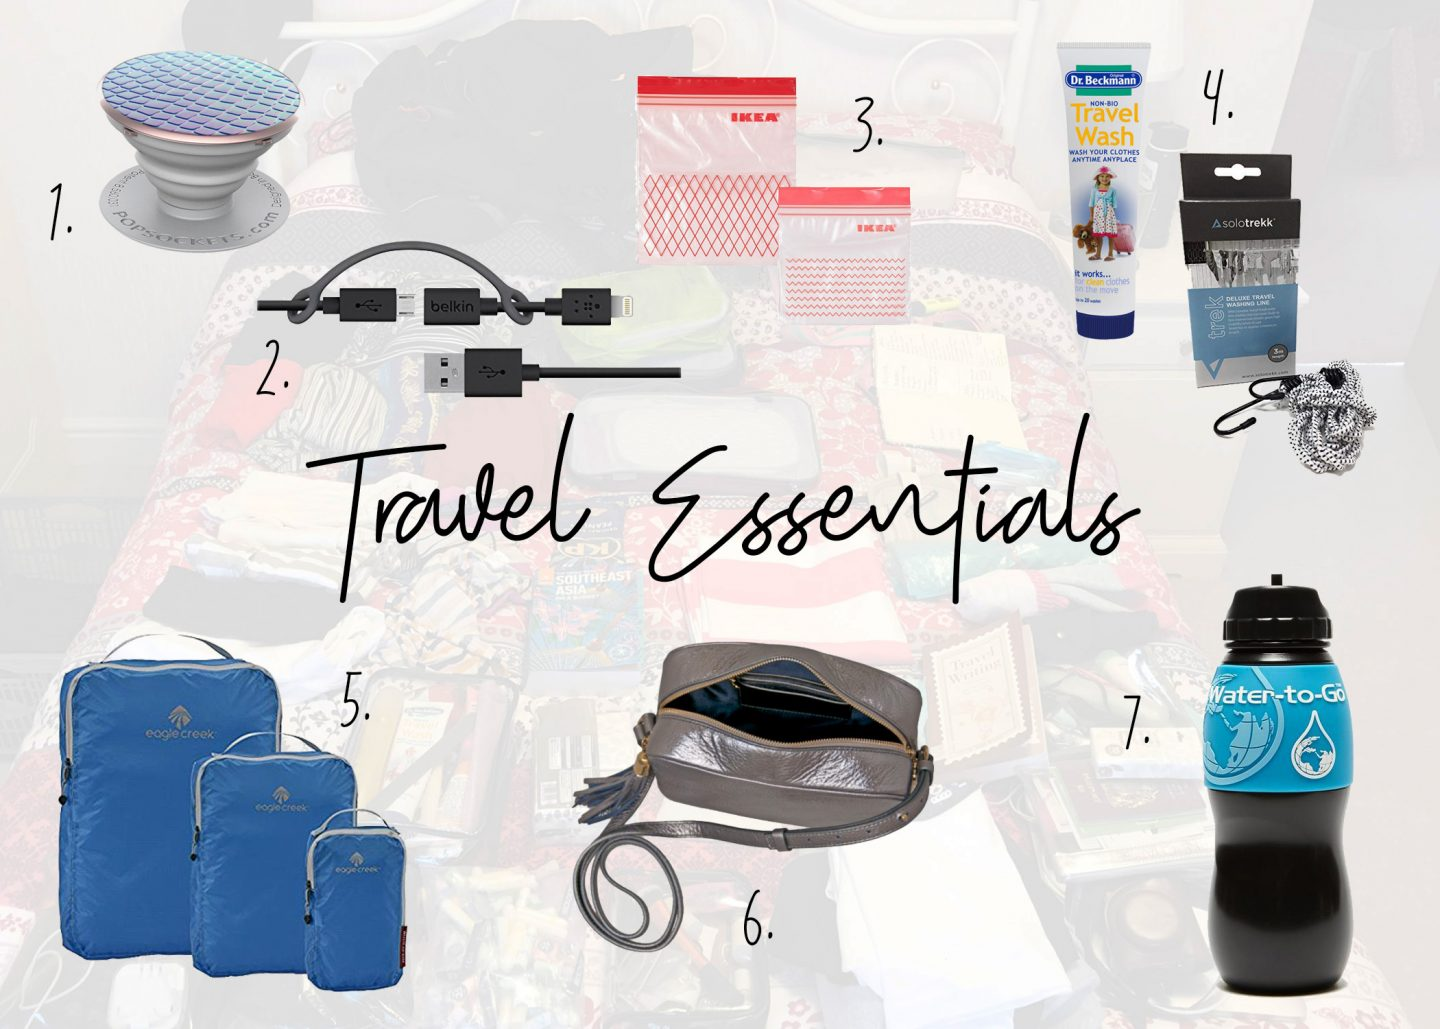 Collage of all useful travel essentials including pop socket, sandwich bags, wires, travel wash, bag, water bottle and packing squares.